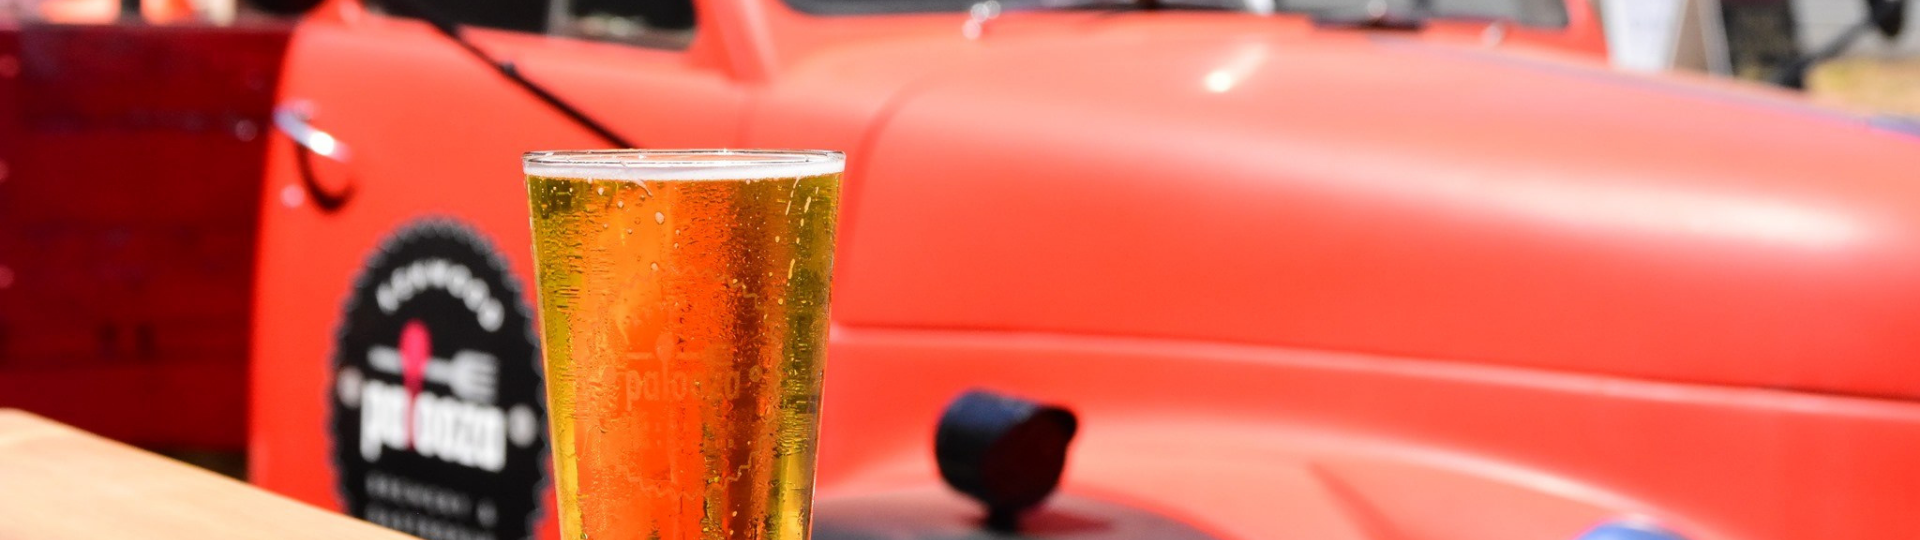 glass of beer on table, red classic pick up truck in background